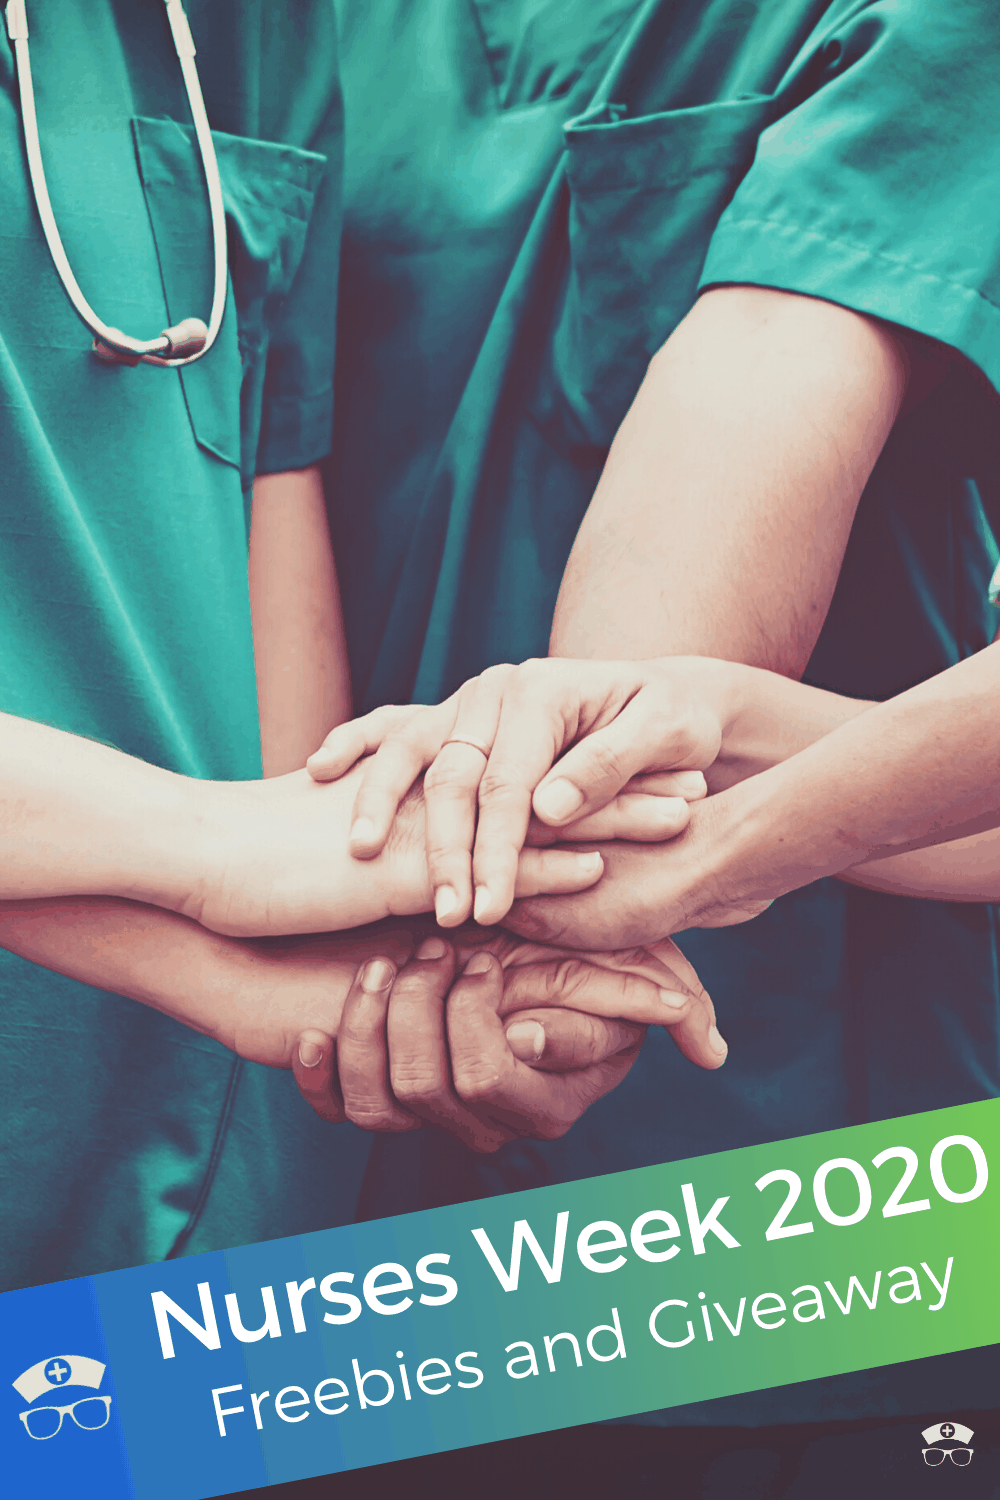 Nurses Week 2020 Freebies and Giveaway. Enter the Nurses Week 2020 giveaway and get the scoop on all the freebies. #thenerdynurse #nurse #nurses #nursesweek #giveaway #freebies